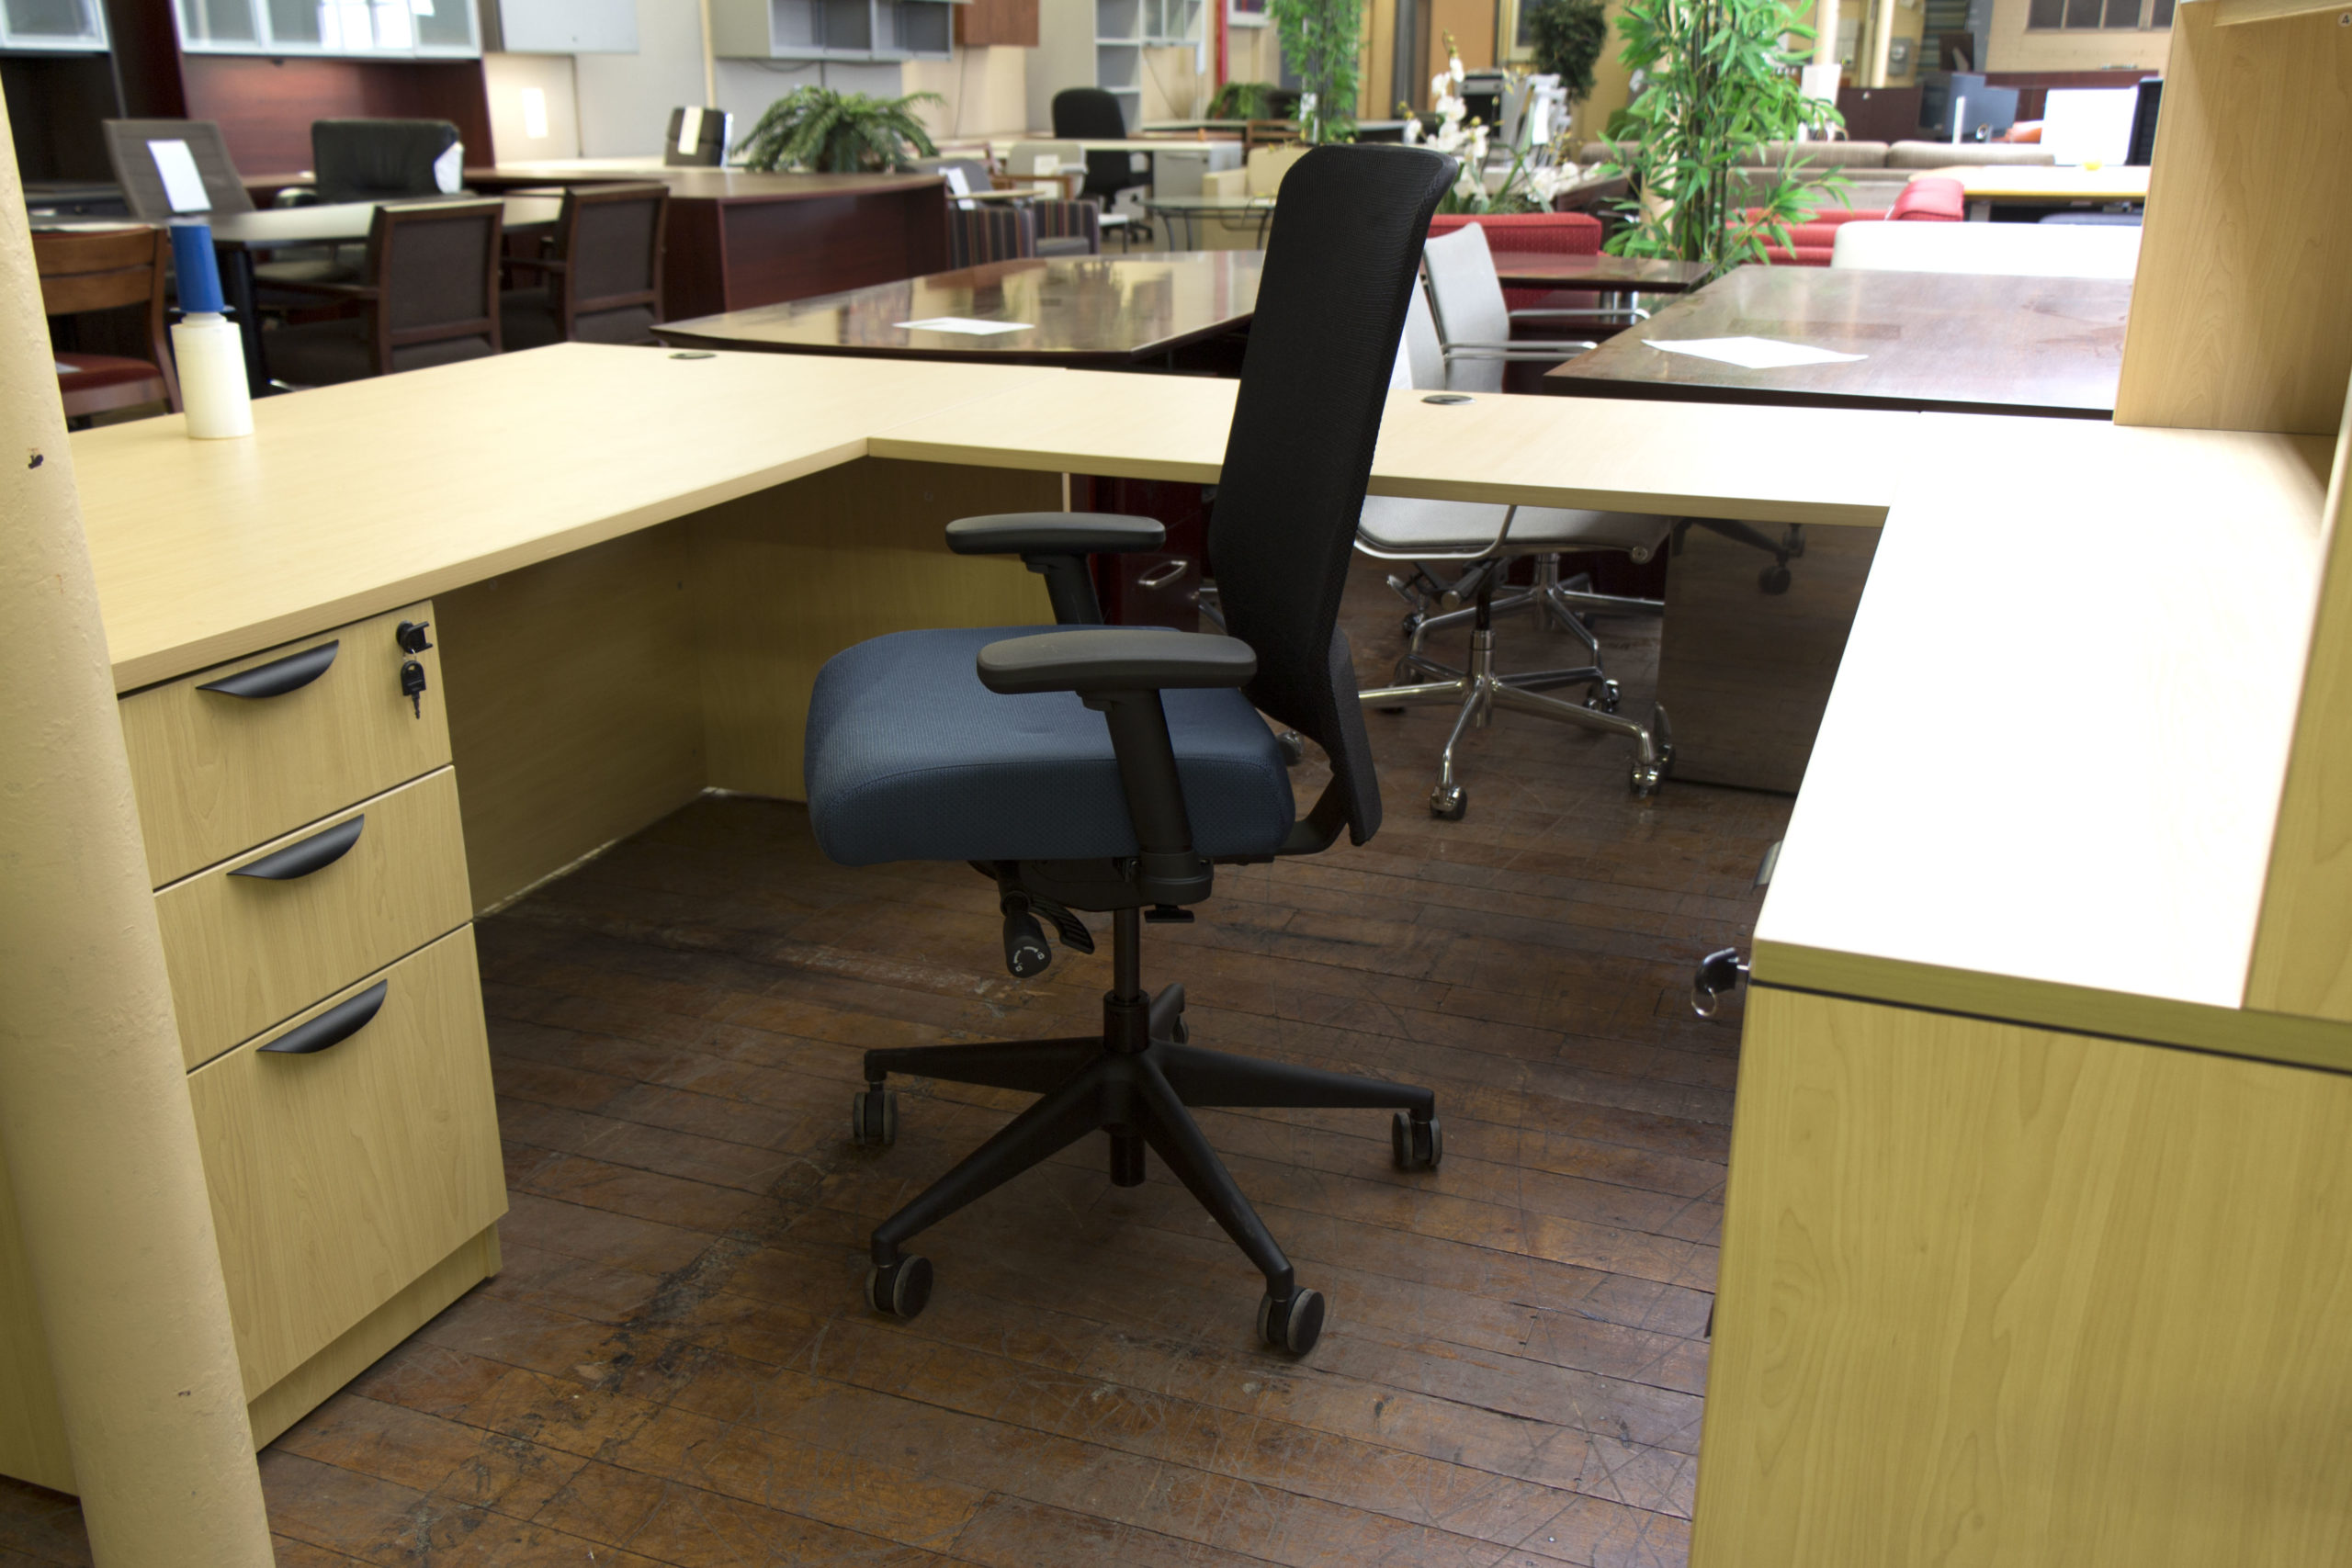 peartreeofficefurniture_peartreeofficefurniture_mg_5526.jpg